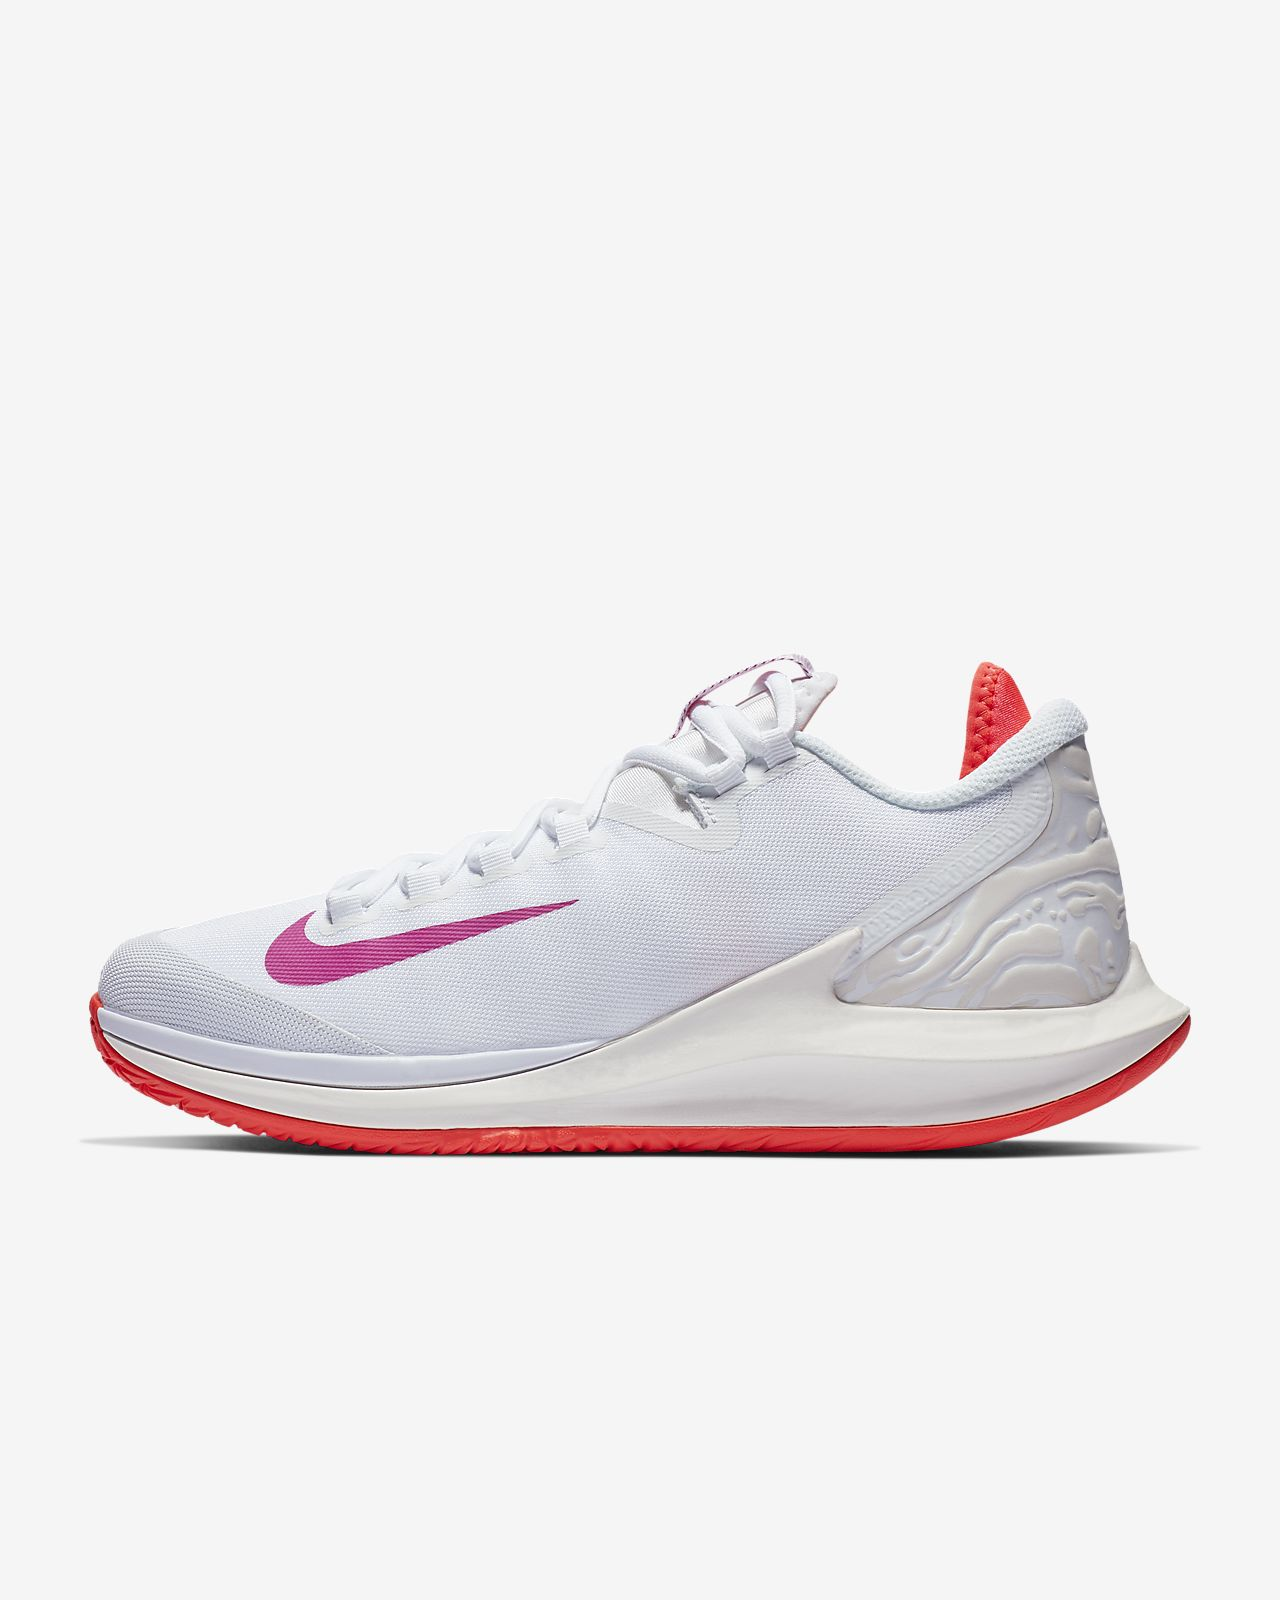 3655652afe NikeCourt Air Zoom Zero Women's Tennis Shoe. Nike.com GB